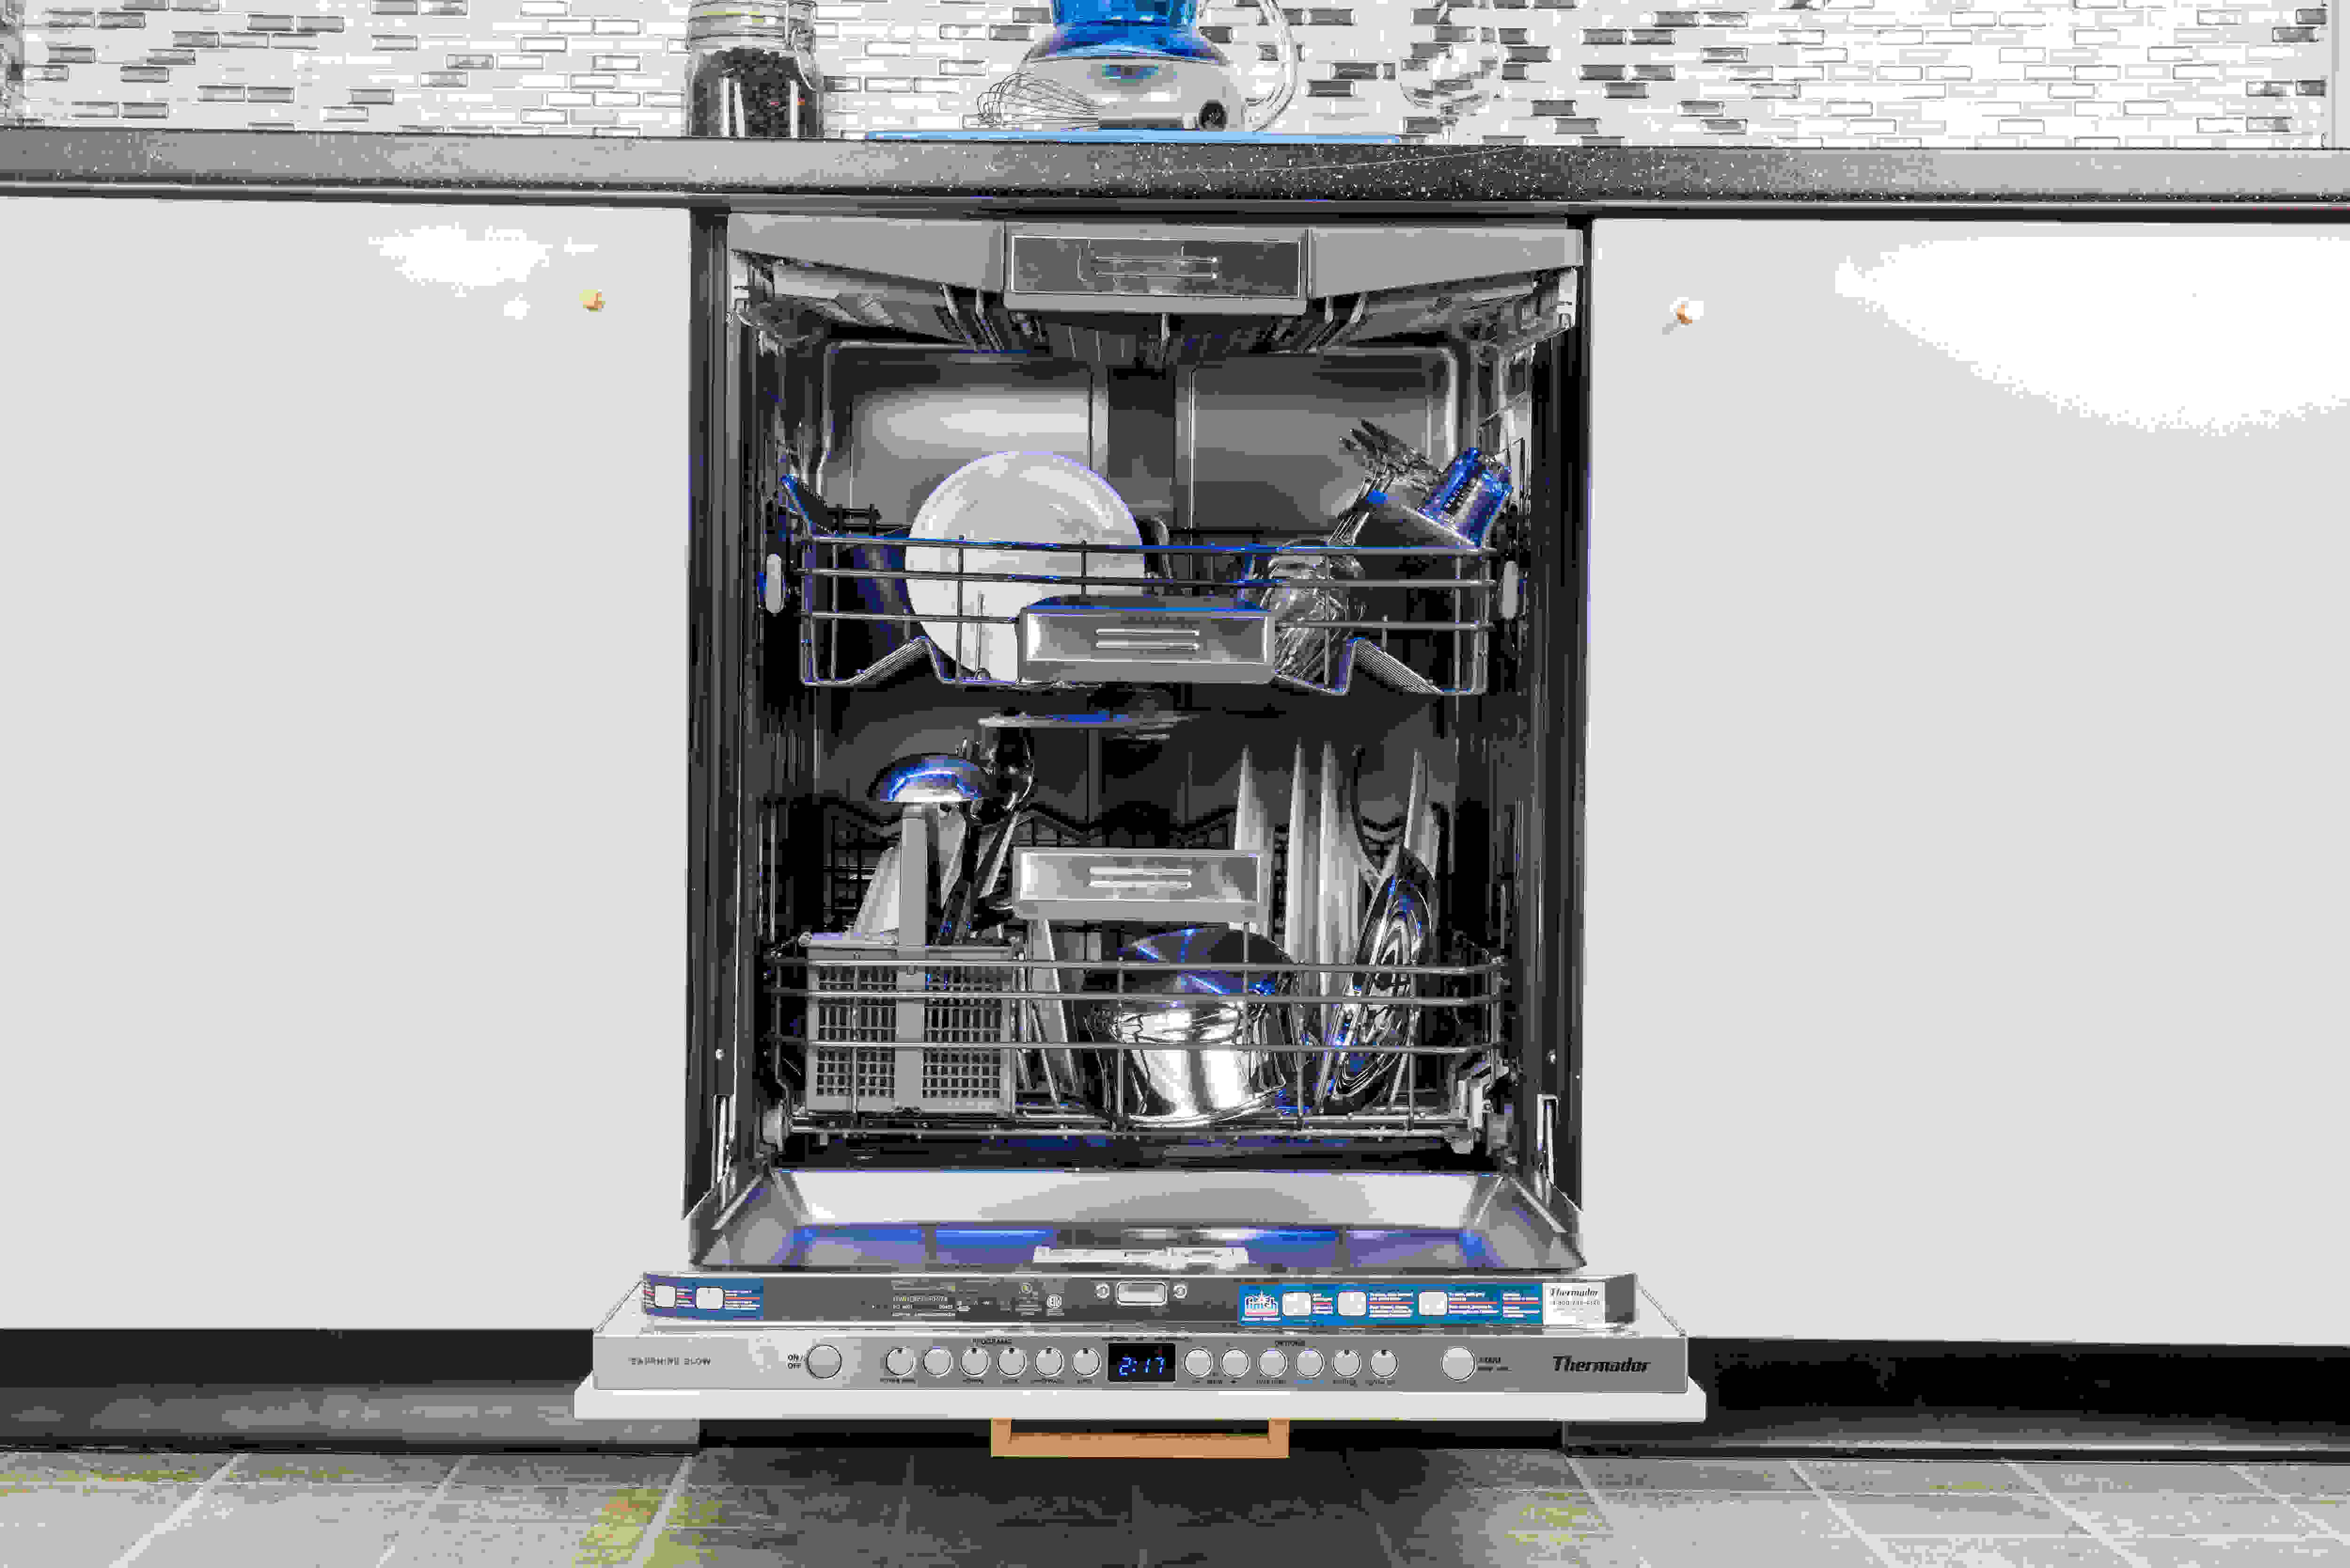 Thermador Sapphire DWHD650JPR loaded front